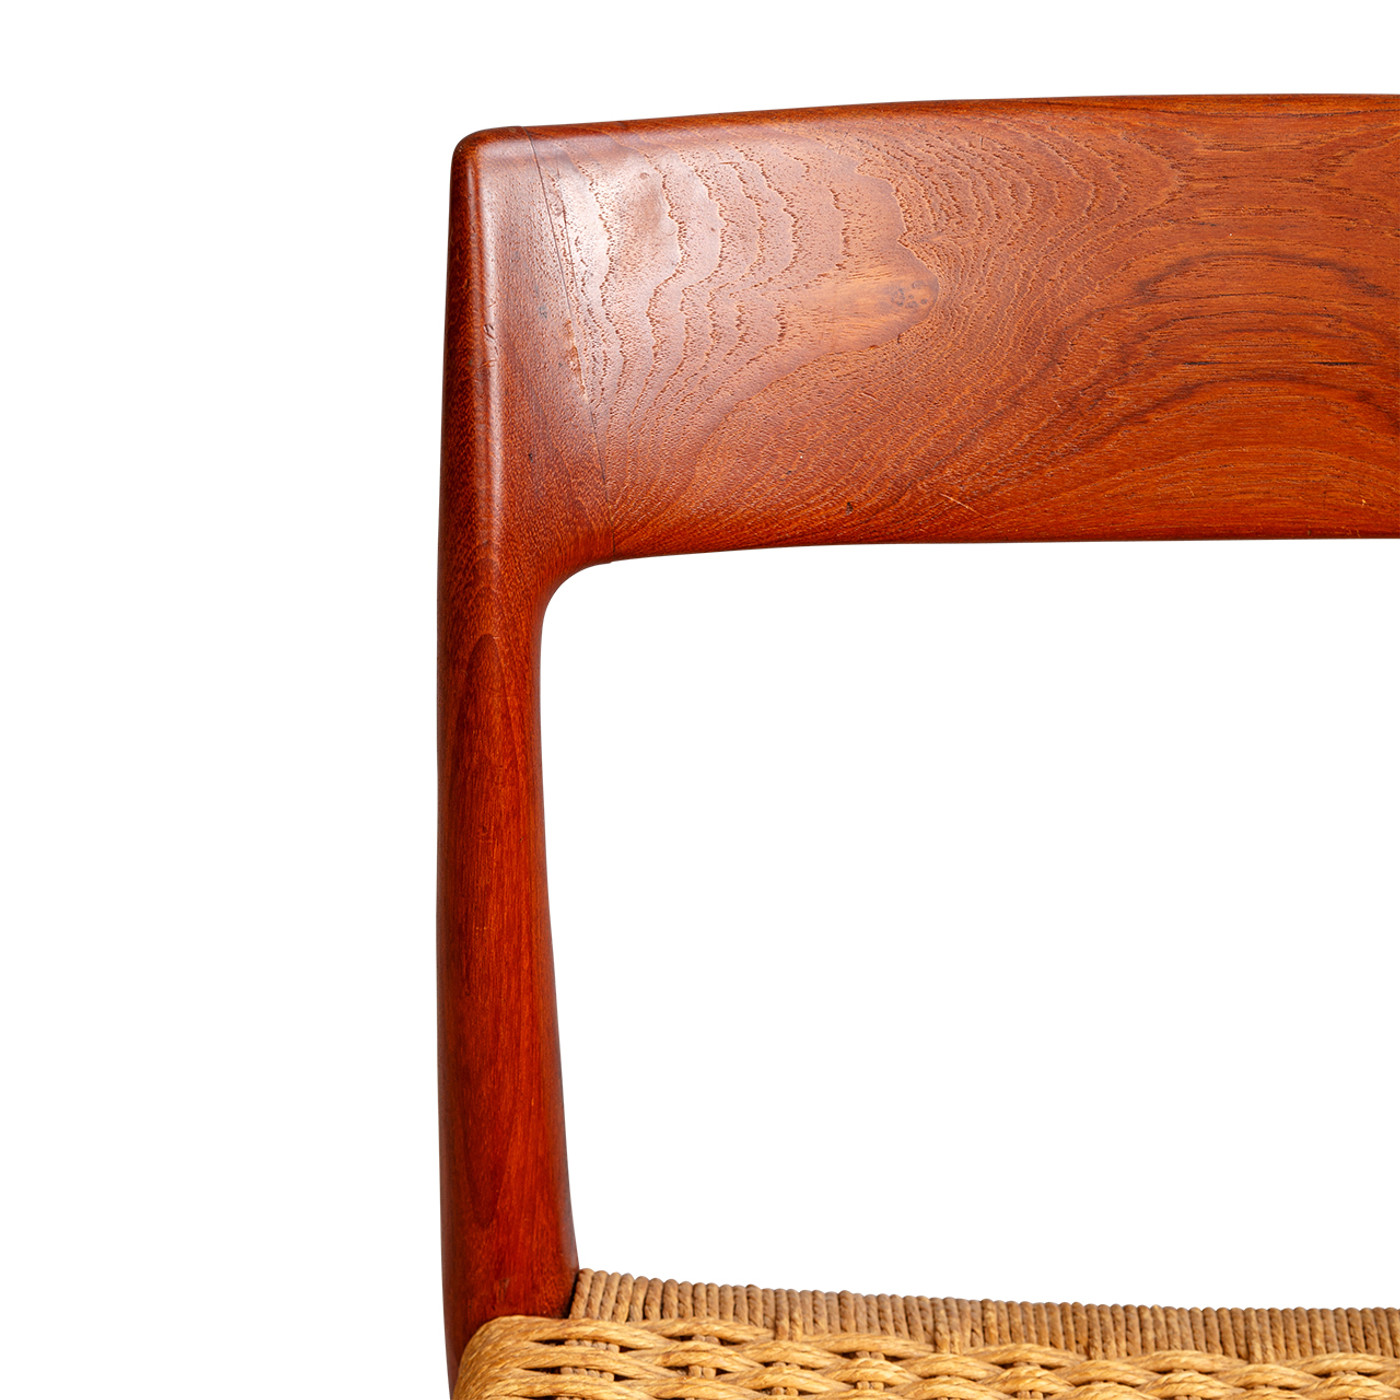 Model 77 Chair by Niels Otto Moller for J.L. Moller #2